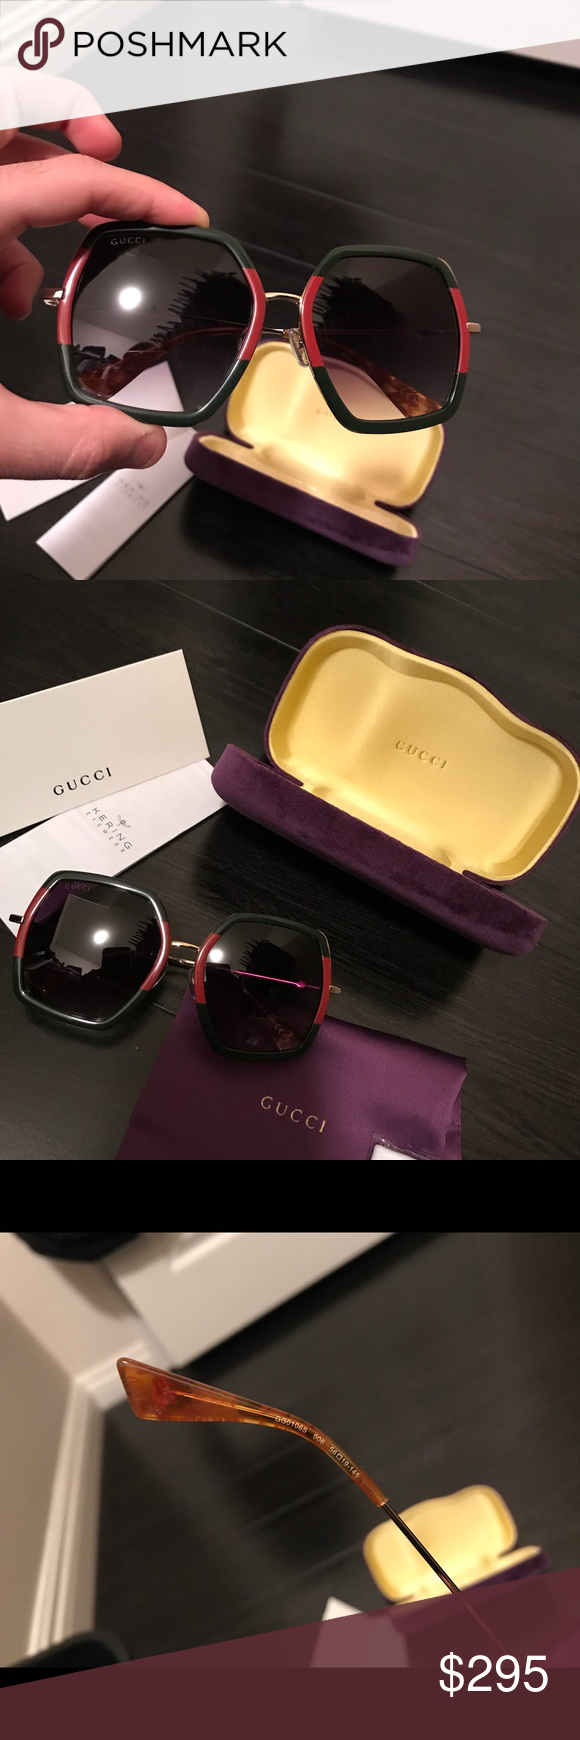 6fb9d200df4d These are AUTHENTIC Gucci sunglasses gg0106 s. Retail price  500+ at  Bloomingdales. I will ship Immediately new to Poshmark i usually sell on  eBay.